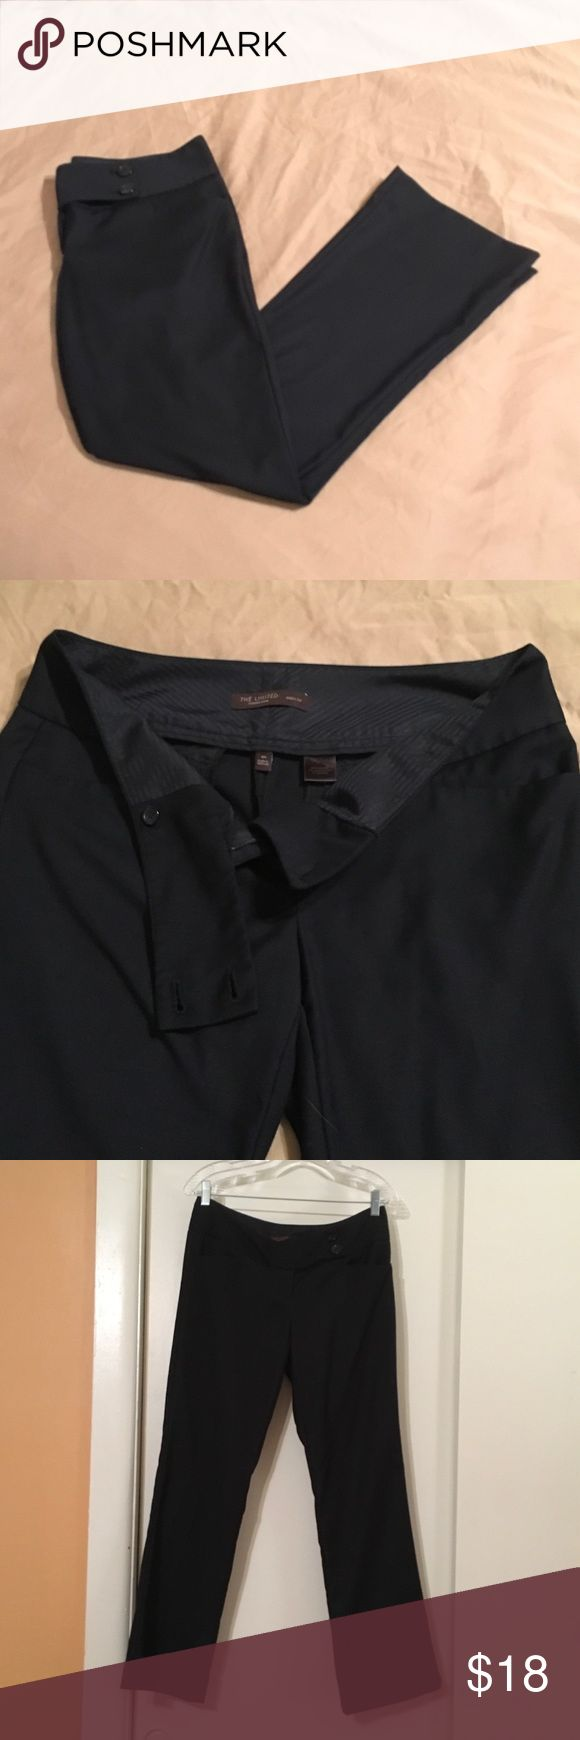 The Limited Drew fit Navy Trousers Like new, very comfy navy blue dress pants that are perfect for the office and traveling. They are the Drew fit in the short length so if you're shorter they can easily be worn with flats. Very nice looking pants 😊 The Limited Pants Trousers